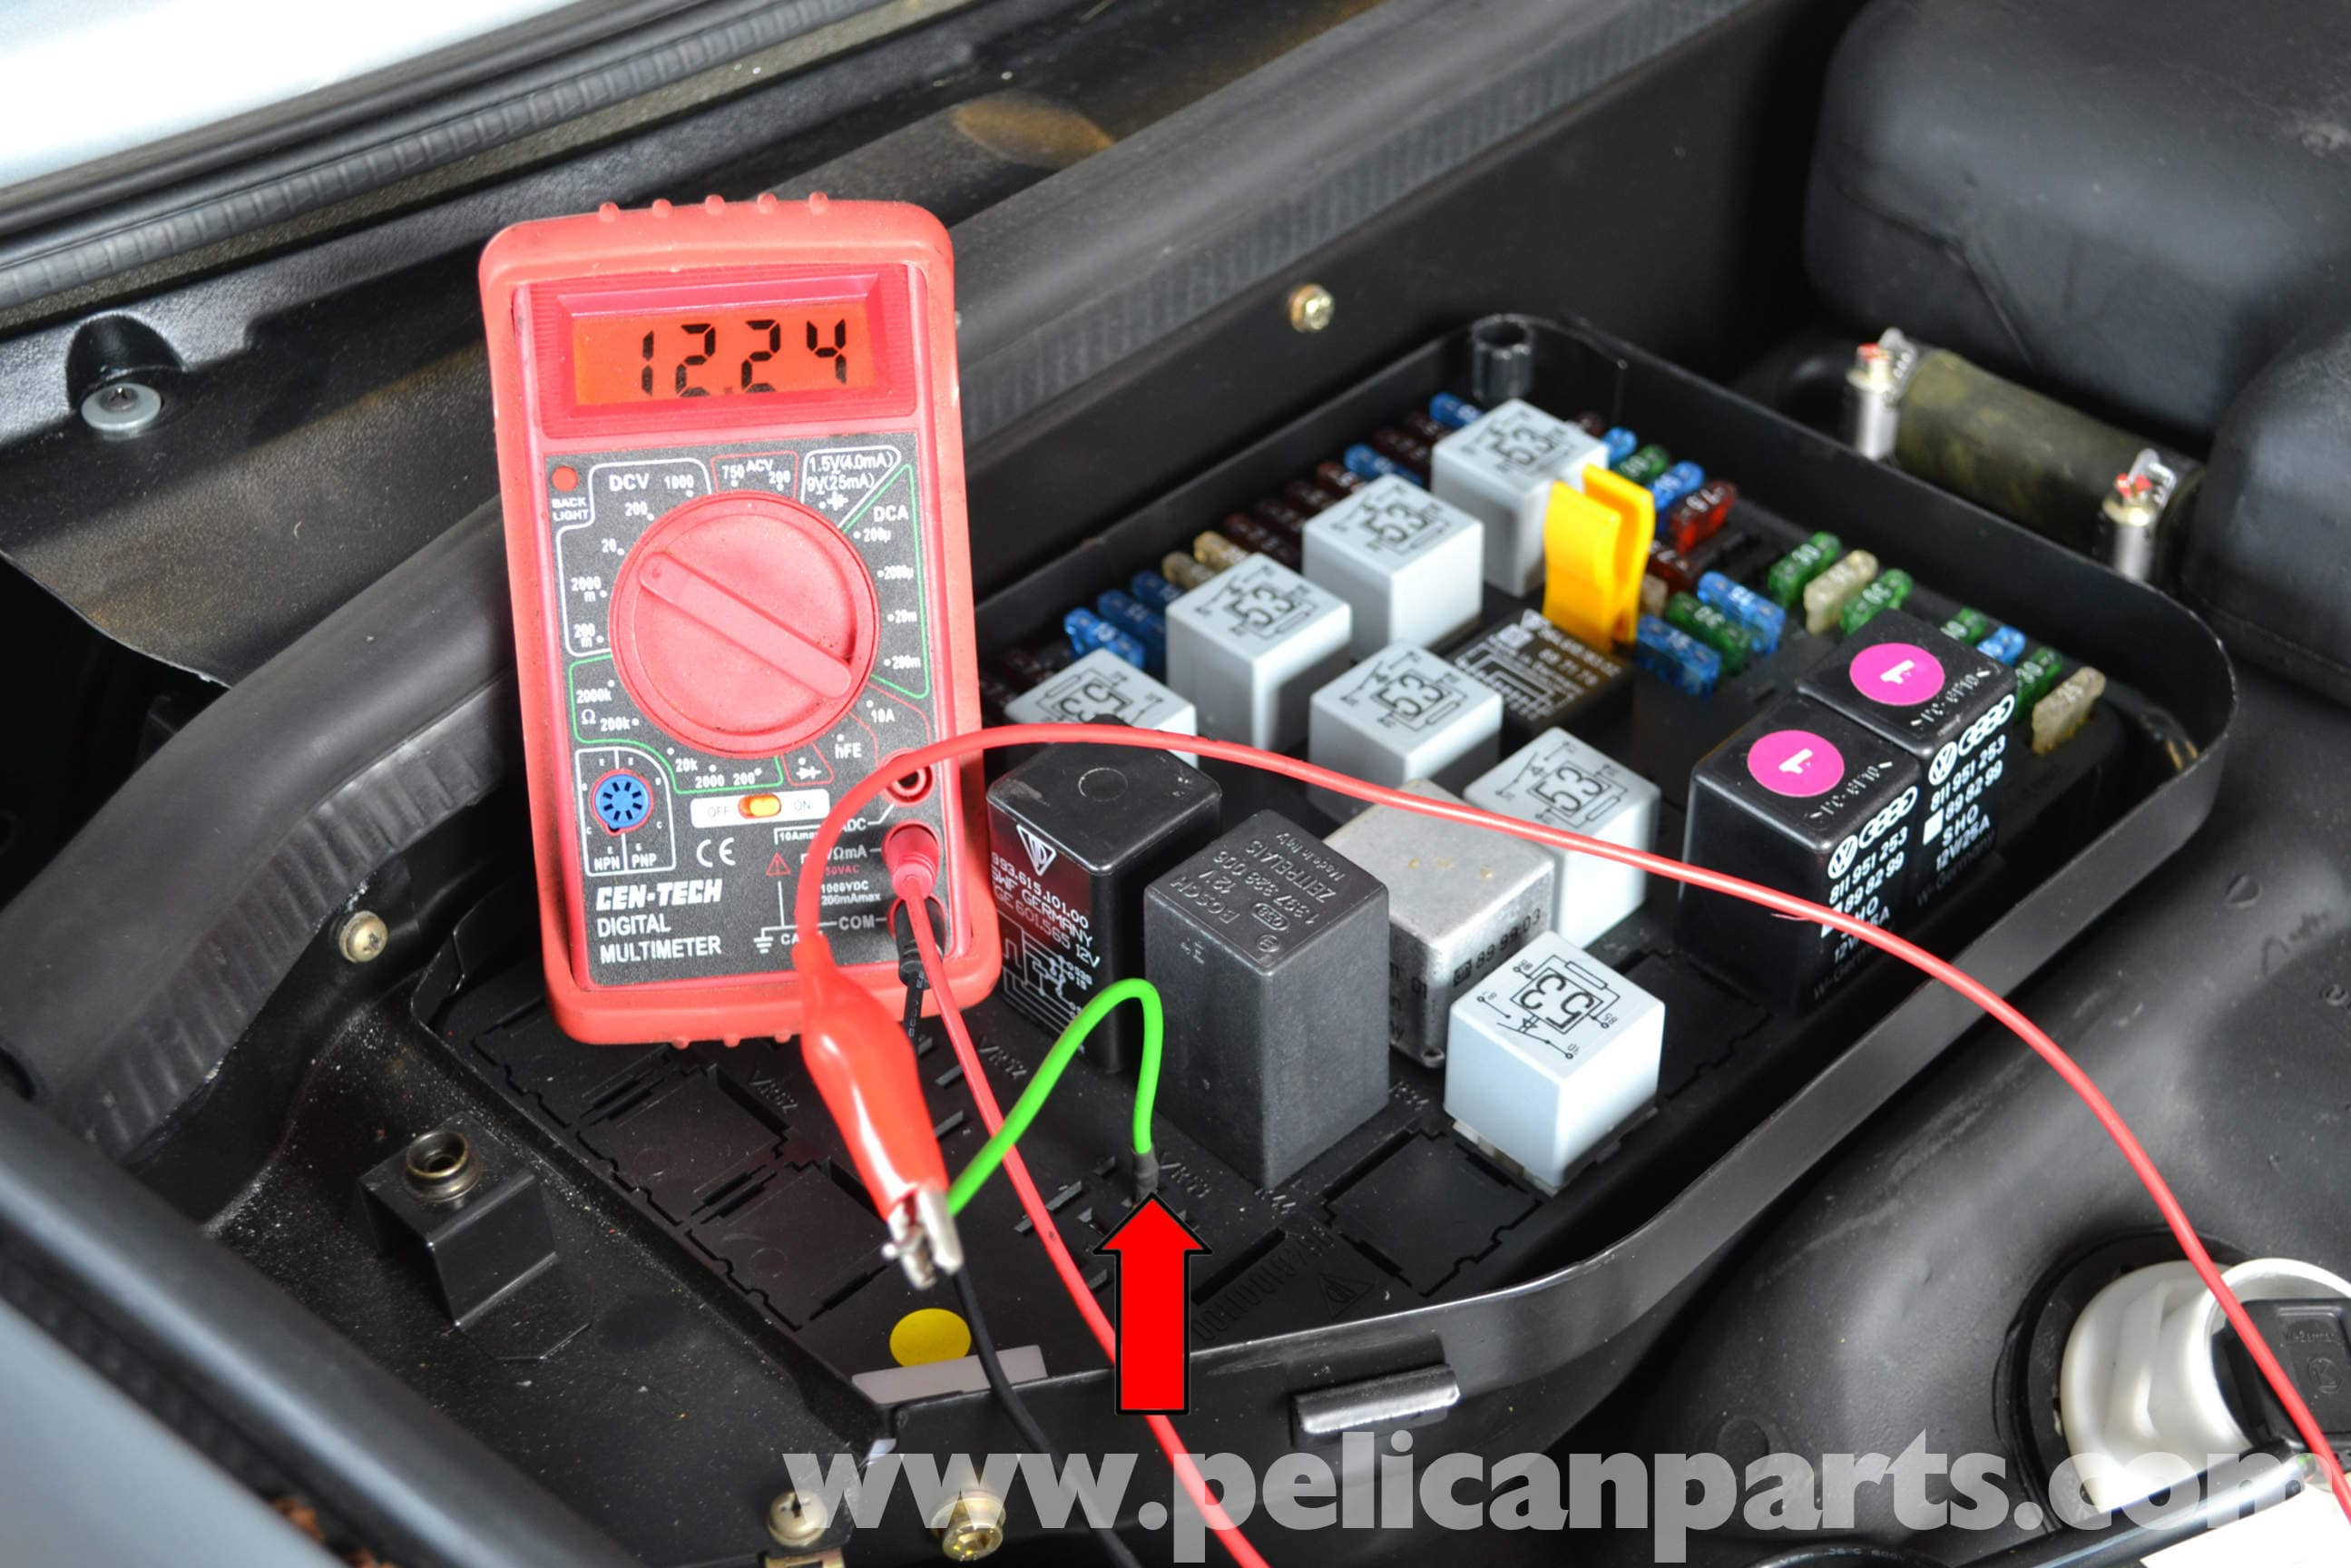 Pelican Technical Article Porsche 993 Dme Relay Trouble Shooting Test Car Fuse Box Multimeter Large Image Extra